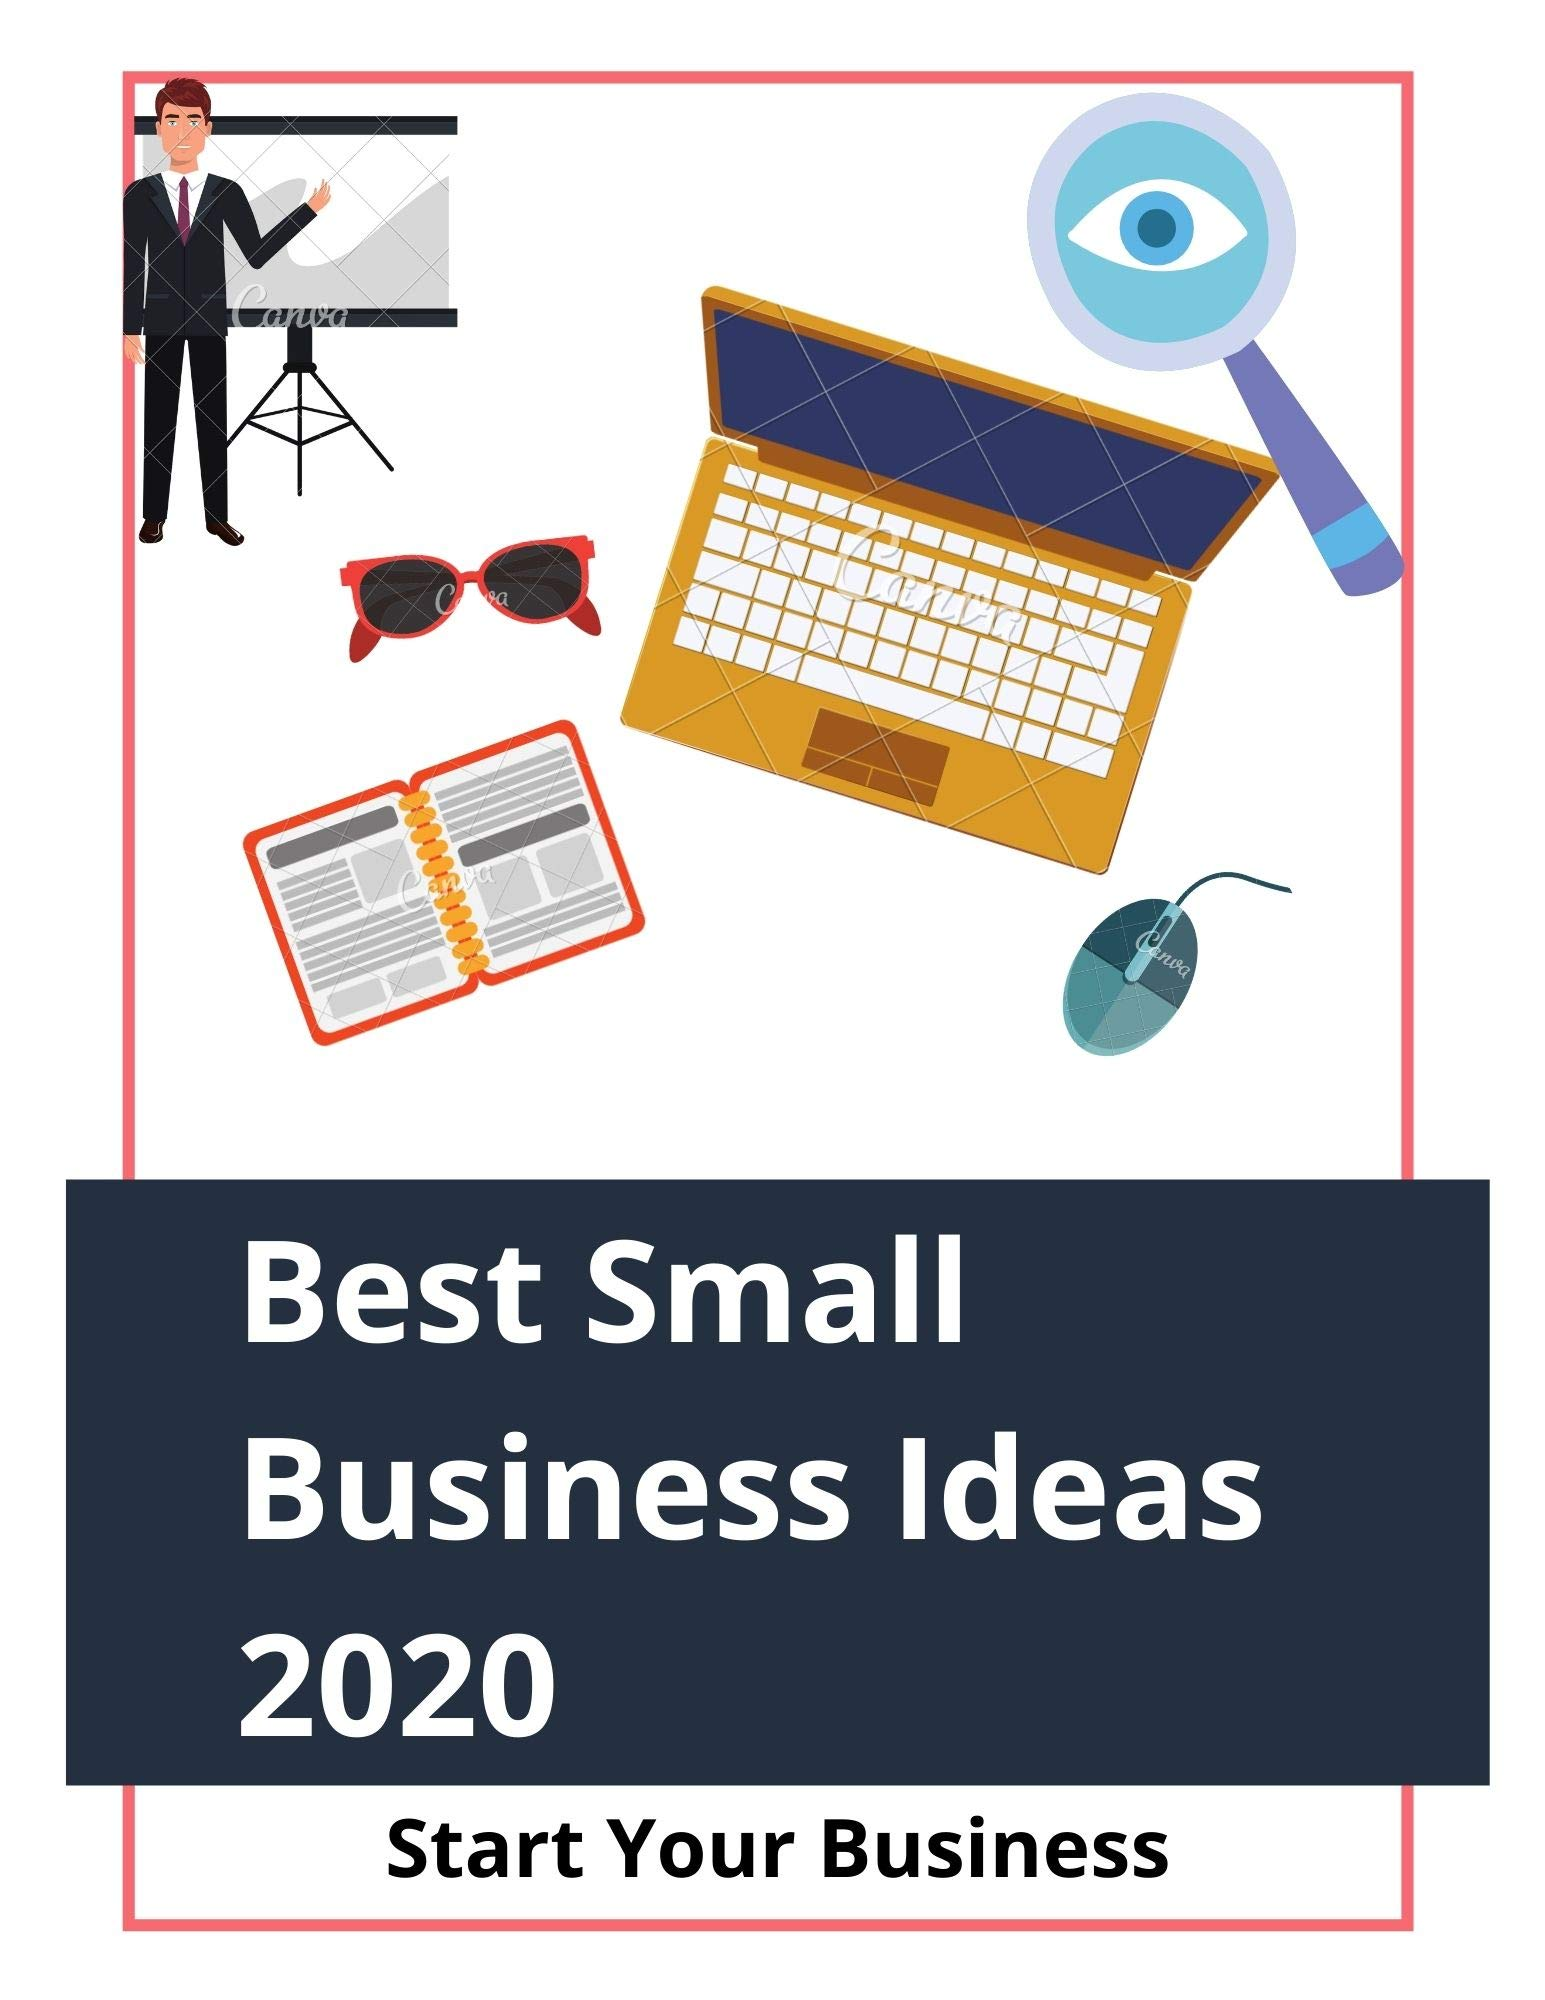 Best Small Business Ideas 2020: Start Your Business, Digital Marketing in Small Business, Smart Investment Ideas 2020, Best Small Business Tips